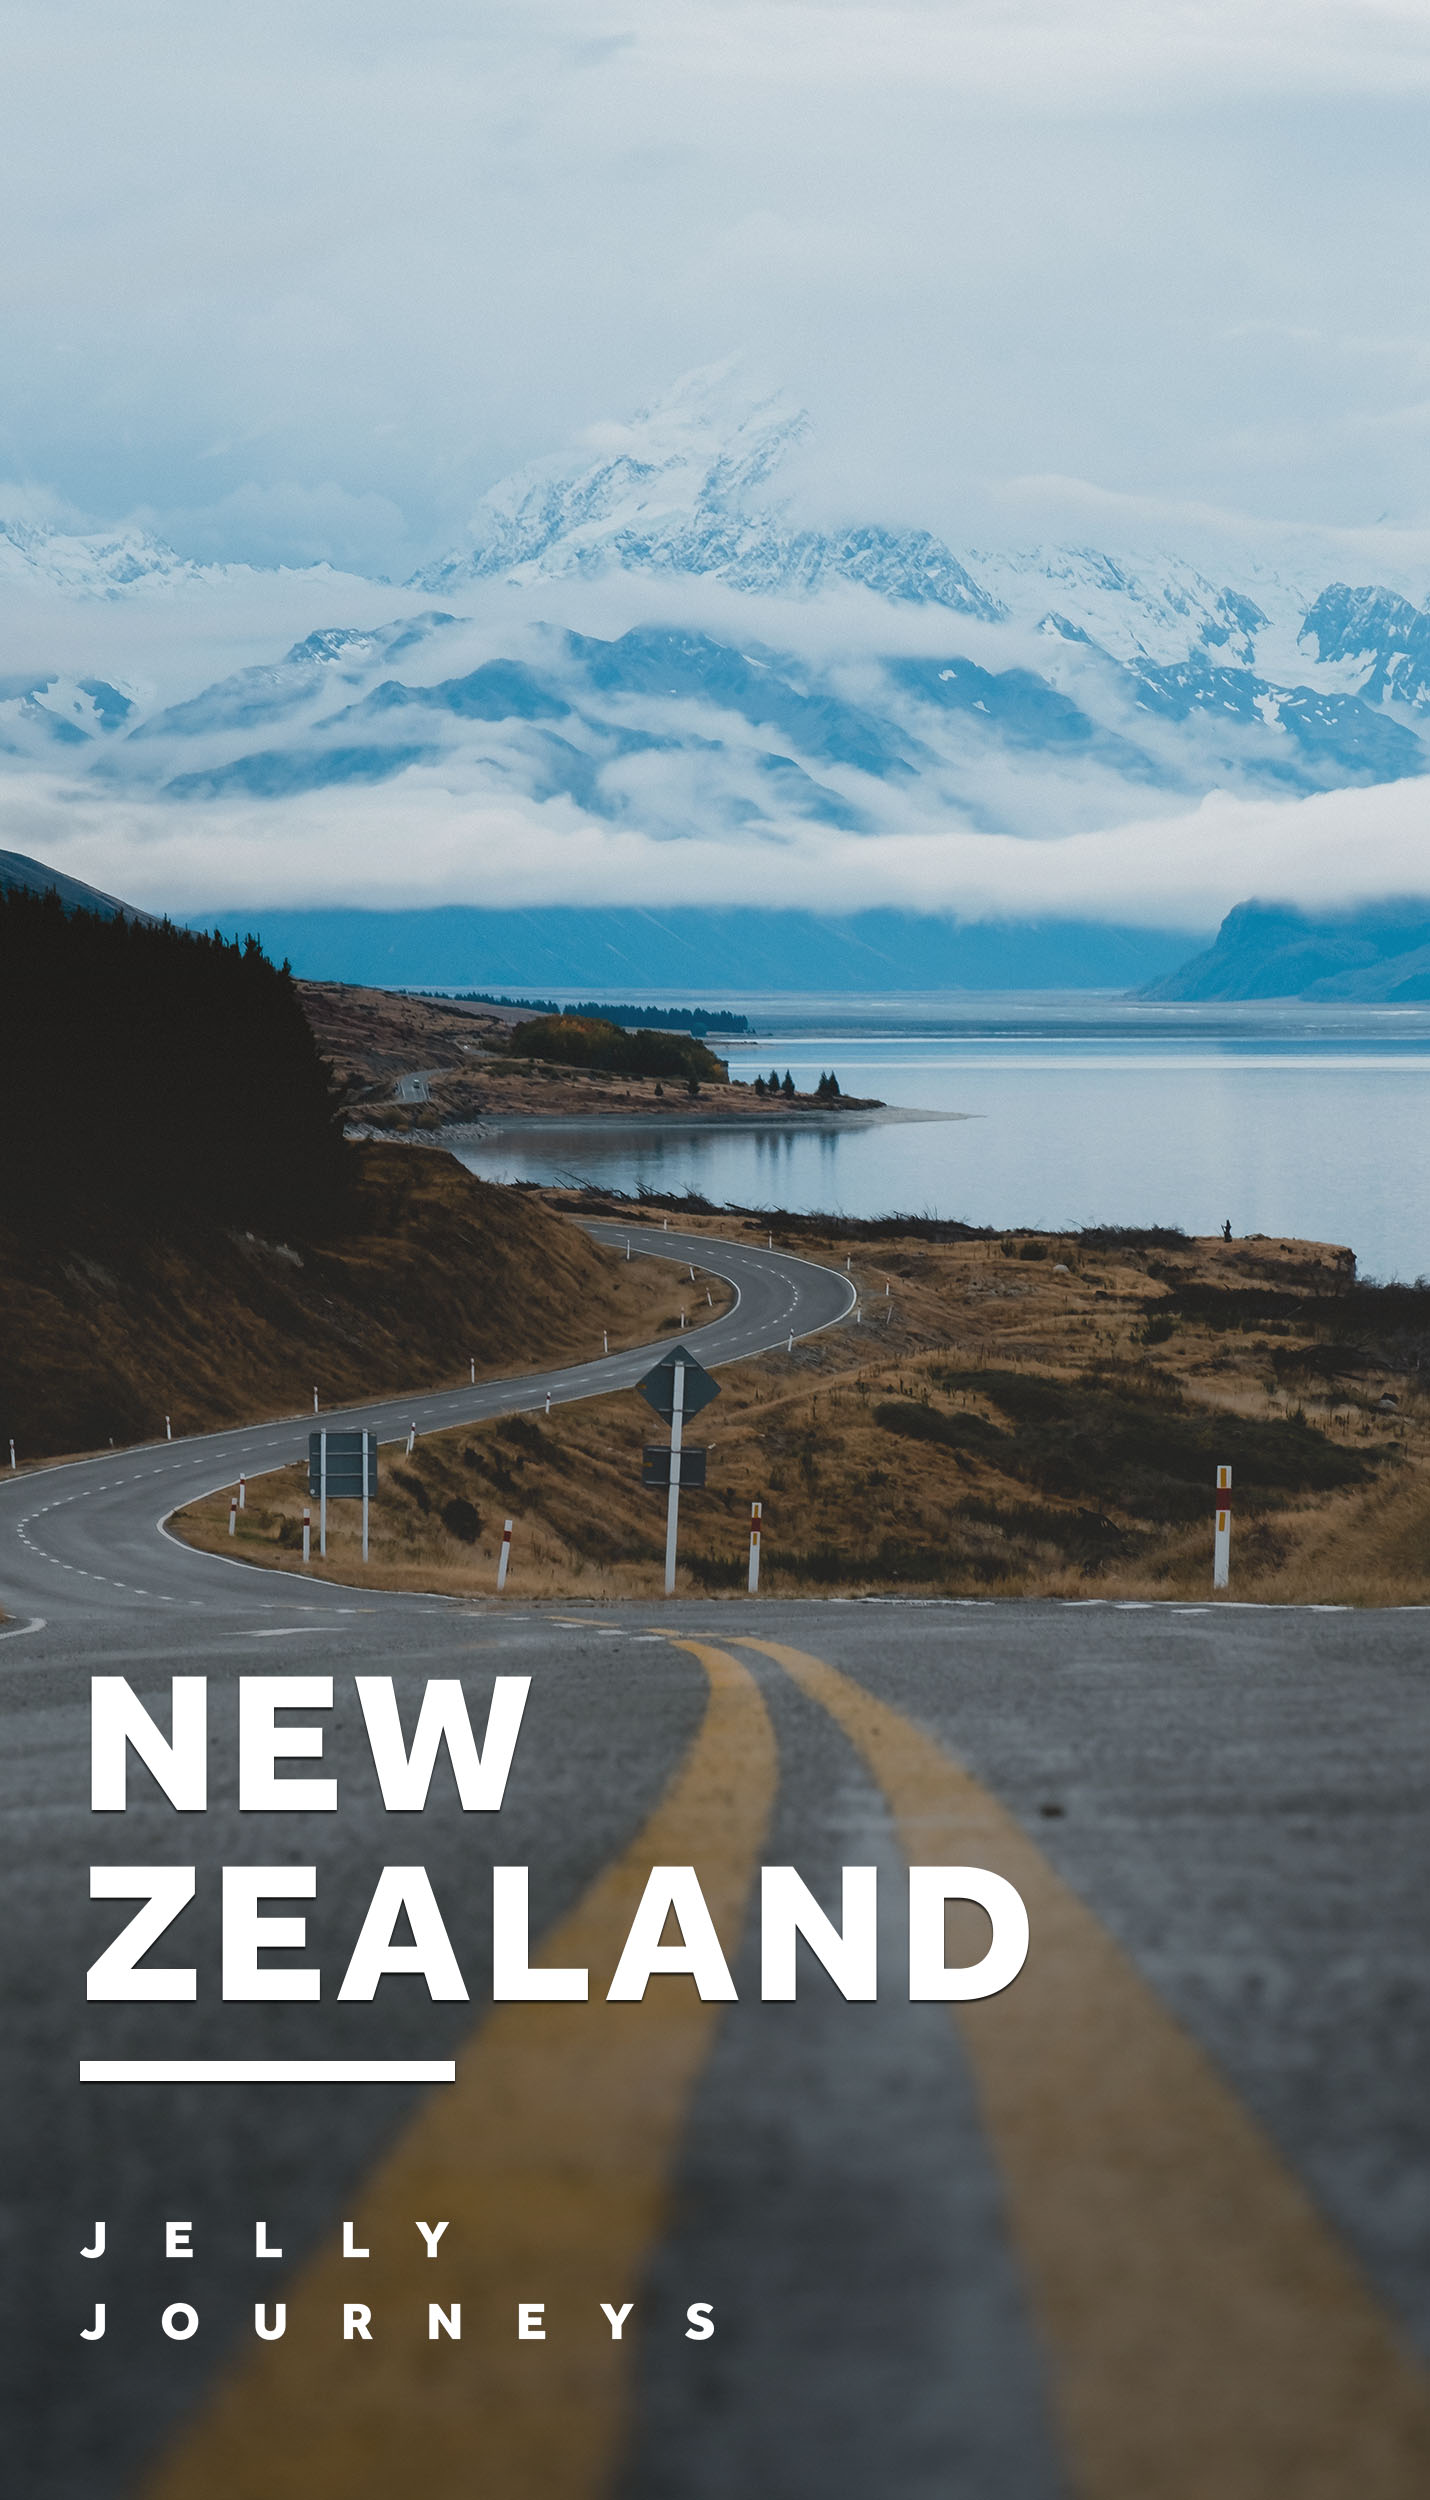 new zealand road trip itinerary 6 weeks jelly journeys. Black Bedroom Furniture Sets. Home Design Ideas